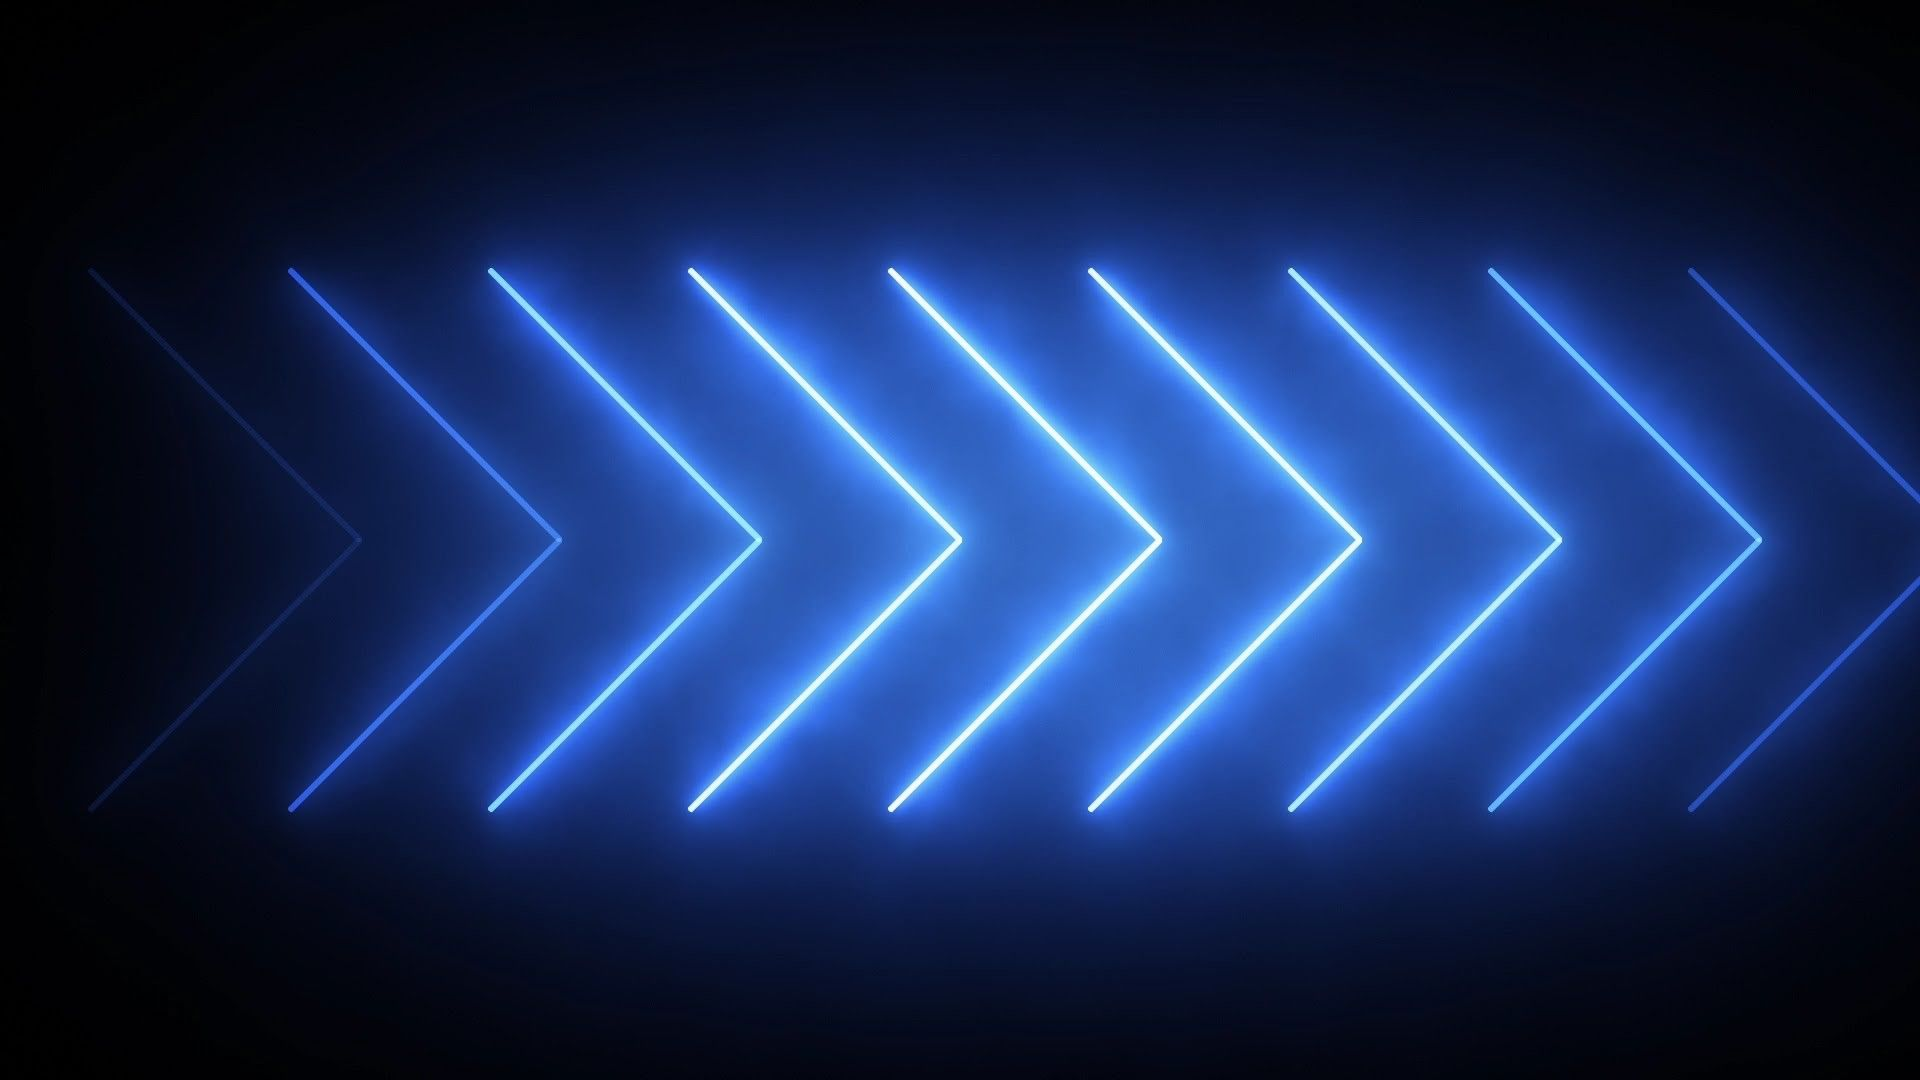 Blue Aesthetic Neon Wallpapers Top Free Blue Aesthetic Neon Backgrounds Wallpaperaccess